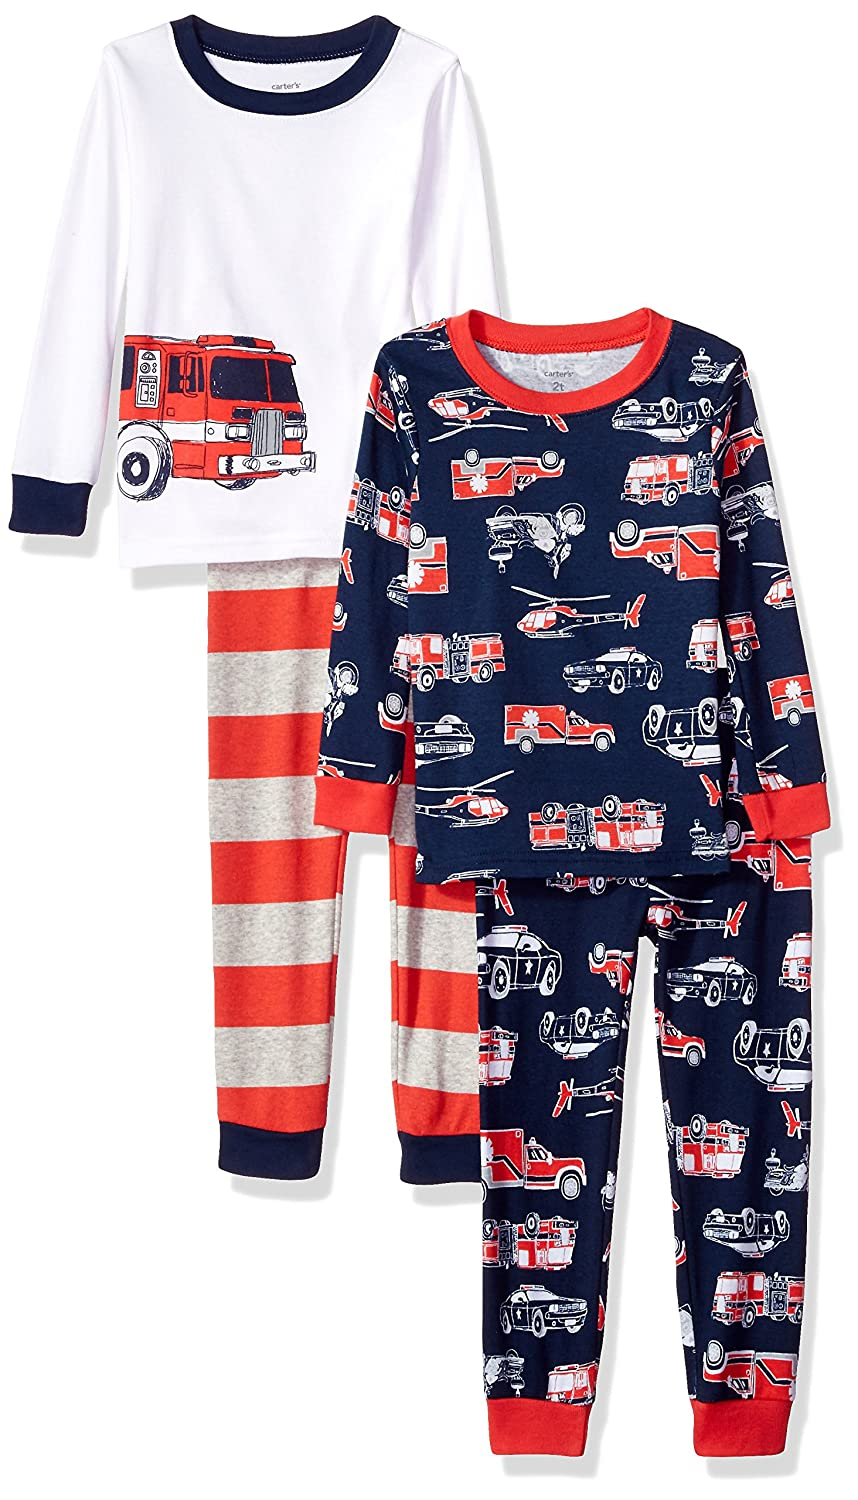 f8be20a34 Amazon.com  Carter s Boys  4 Pc Cotton 341g271  Clothing